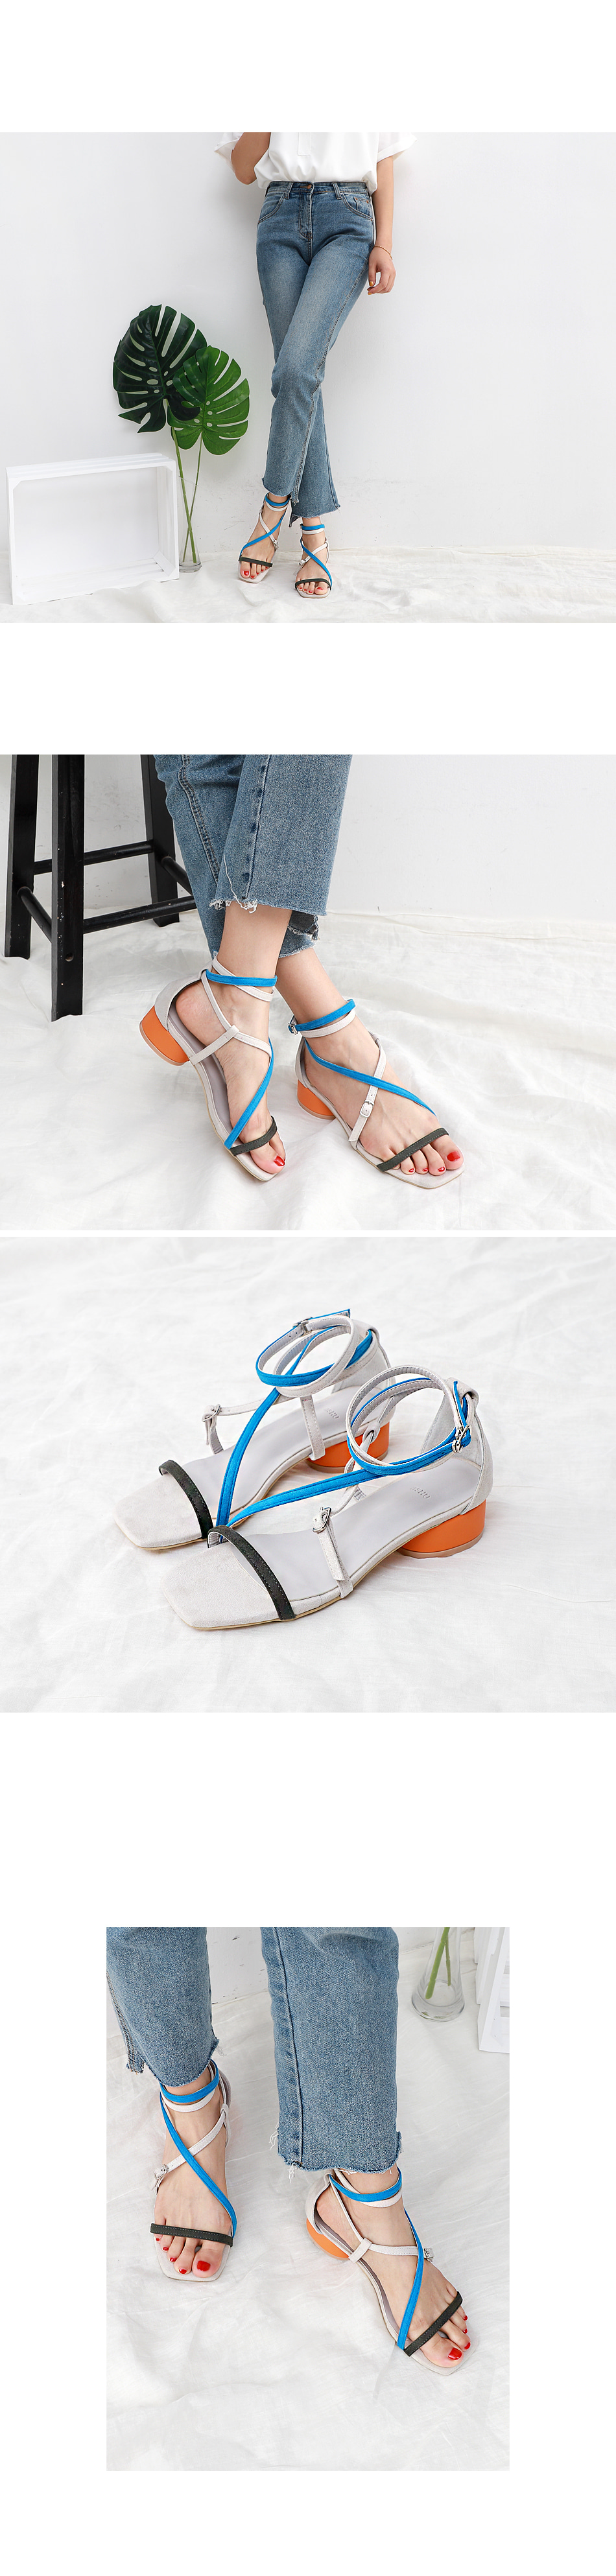 Isshu suede color point strap round heel sandals 5315